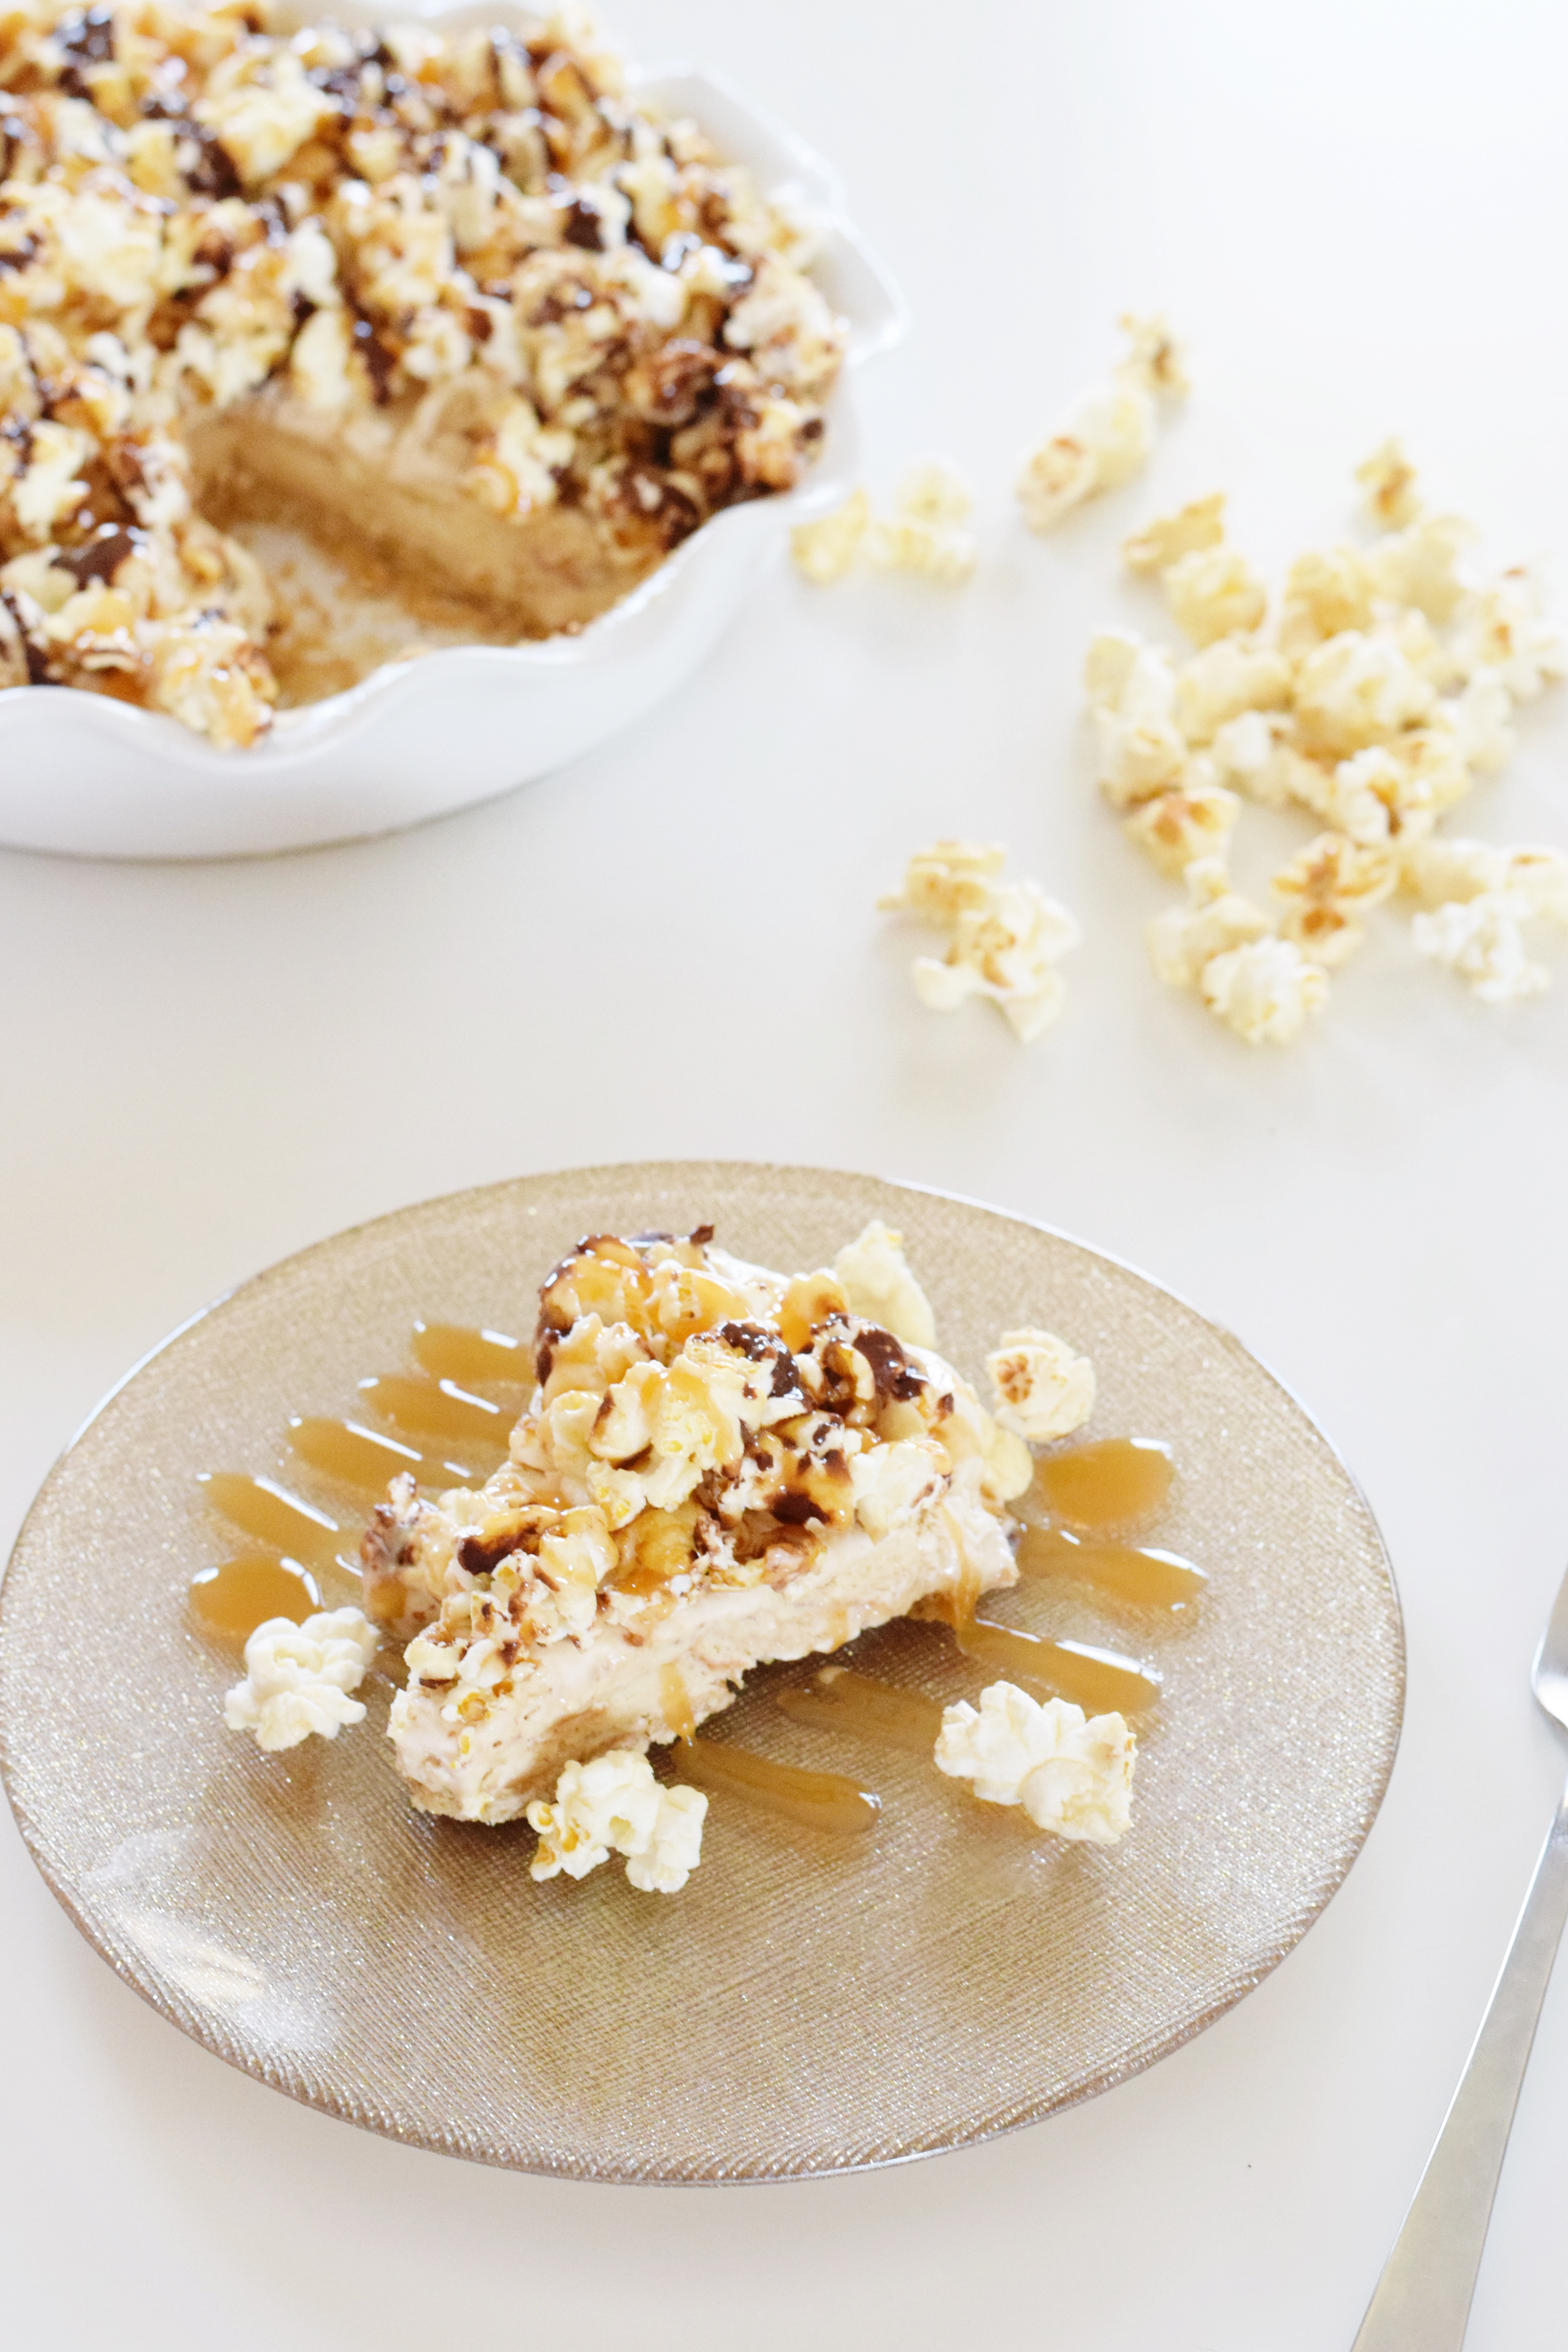 Salted Caramel Popcorn Ice Cream Pie